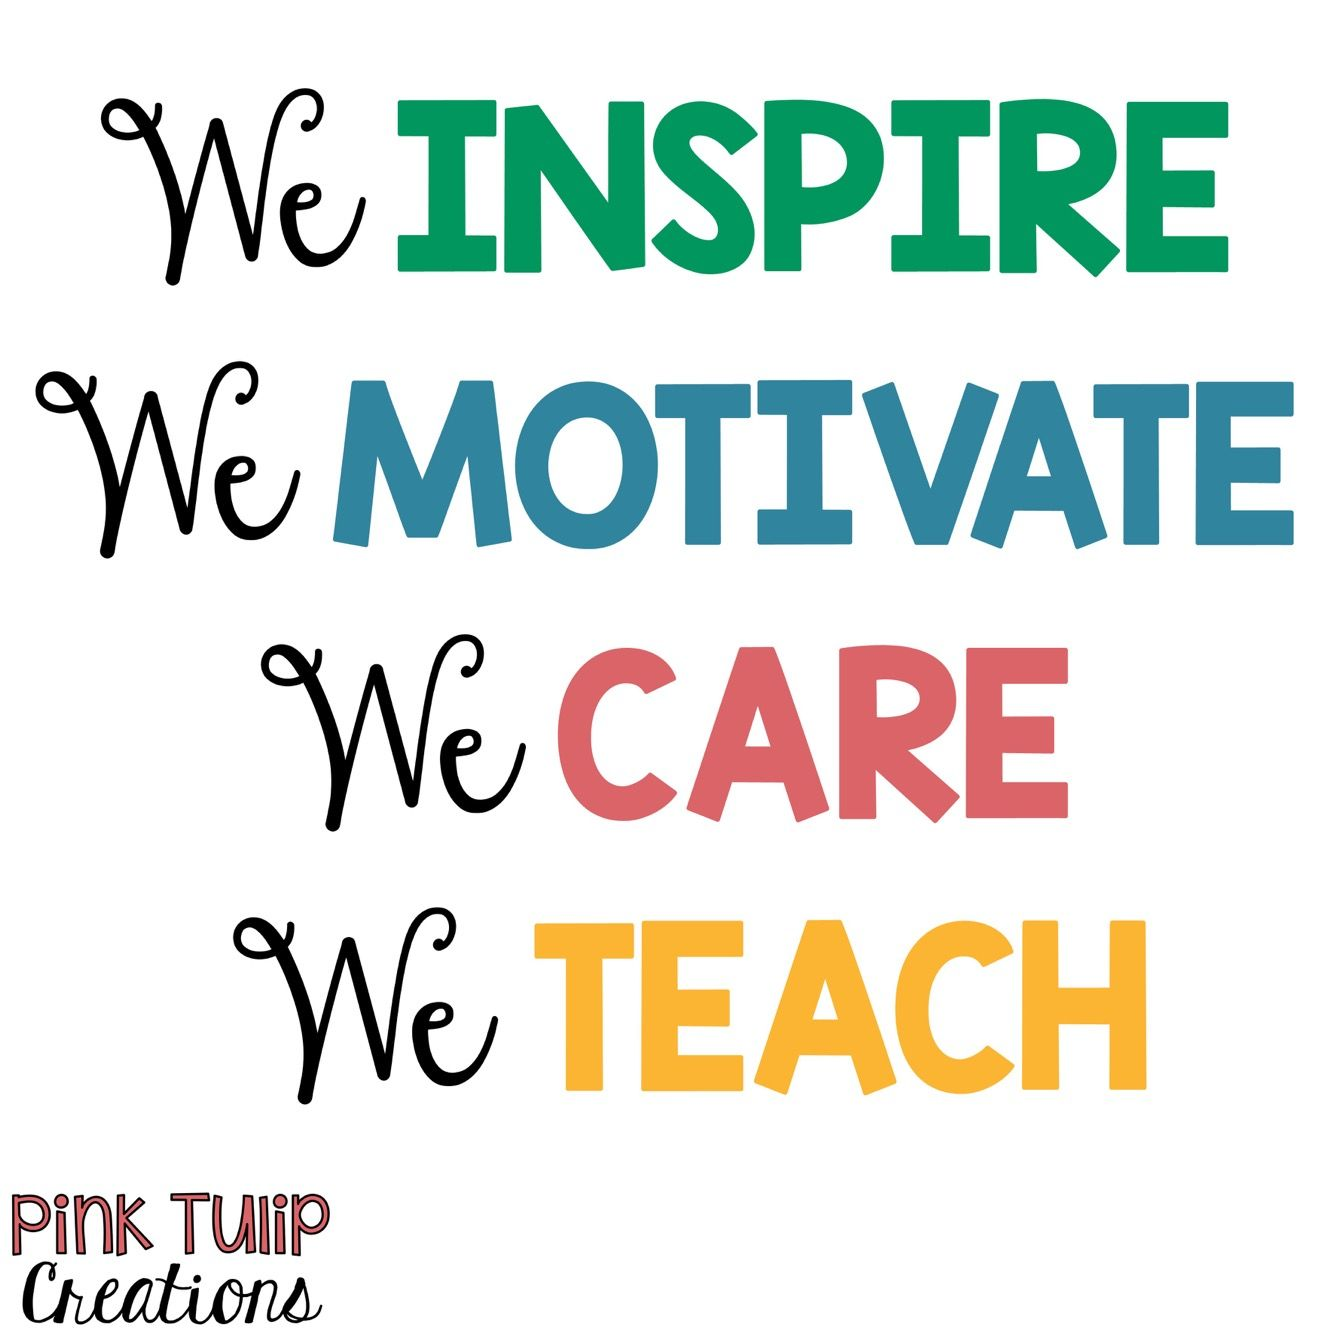 We Inspire We Motivate We Care We Teach Teaching Quotes Educational Education Teacher Lea Teaching Quotes Education Quotes Inspirational Teacher Quotes